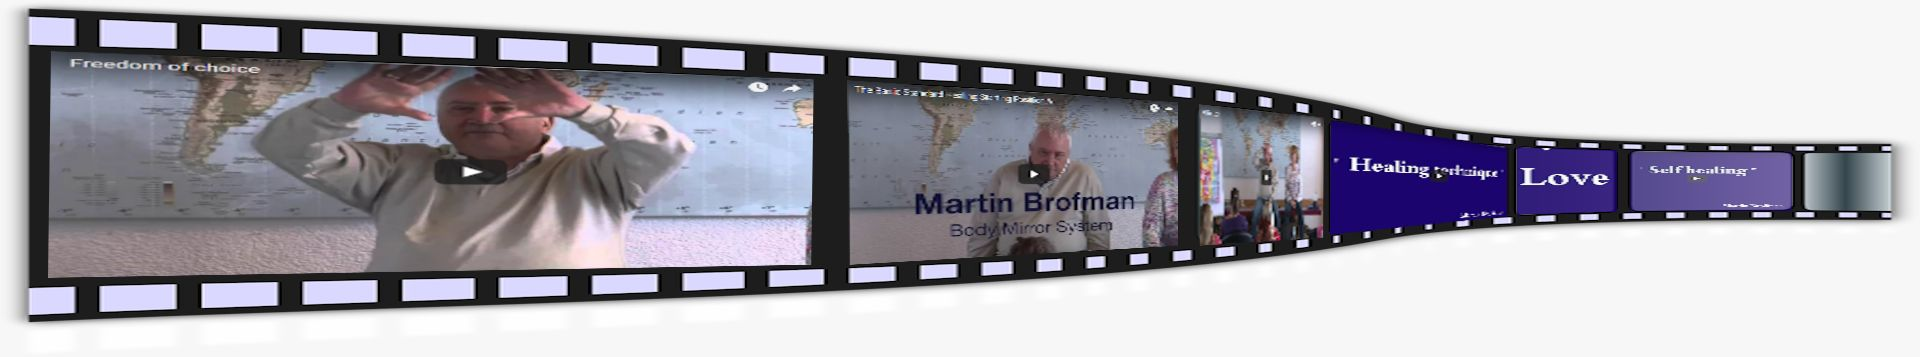 video-martin-brofman-guerison-chakras-stage_1